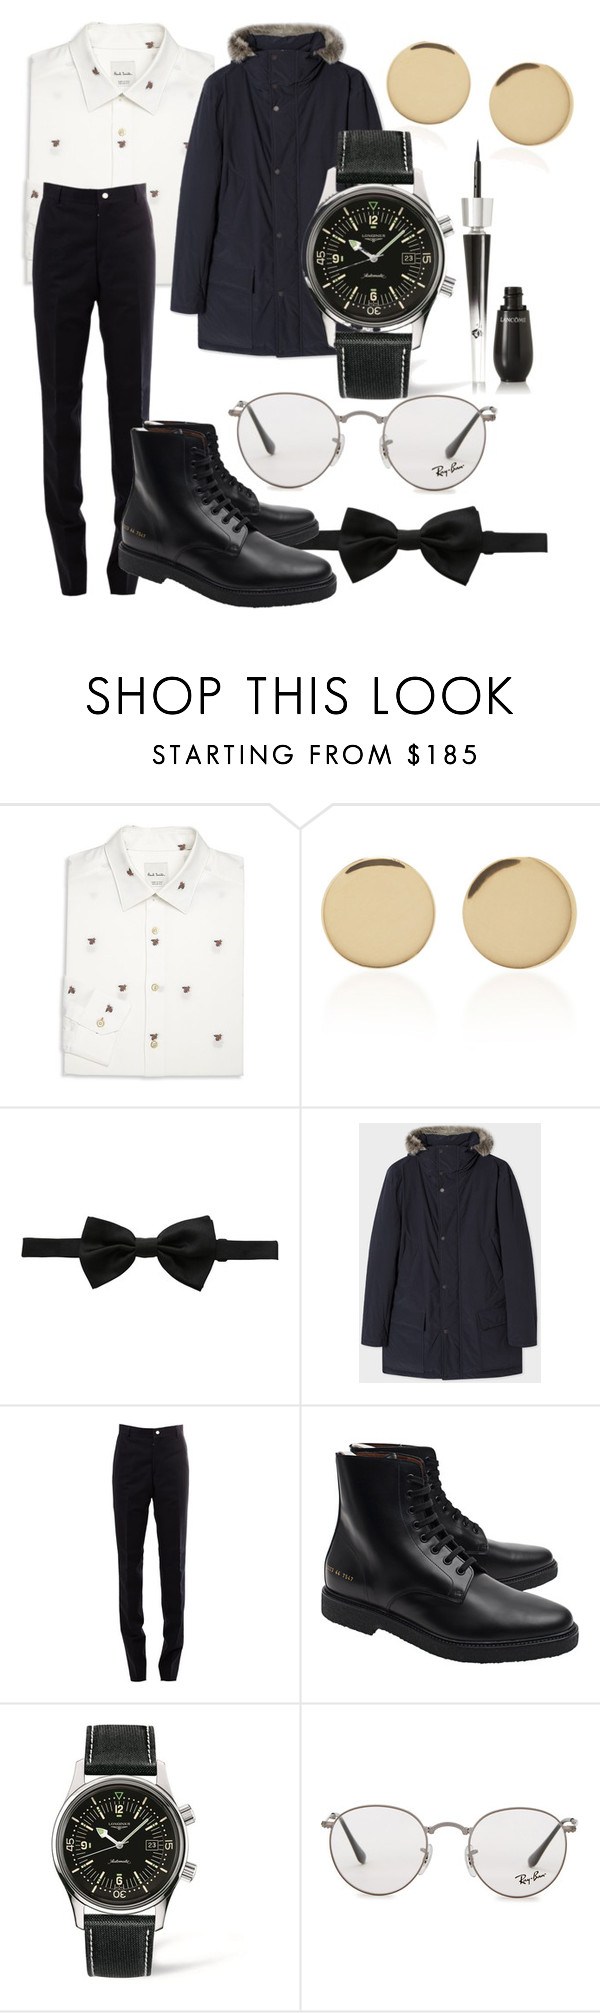 """""""Esme"""" by the-mad-hattess on Polyvore featuring Paul Smith, Magdalena Frackowiak, Dolce&Gabbana, Thom Browne, Common Projects, Longines, Ray-Ban and Lancôme"""